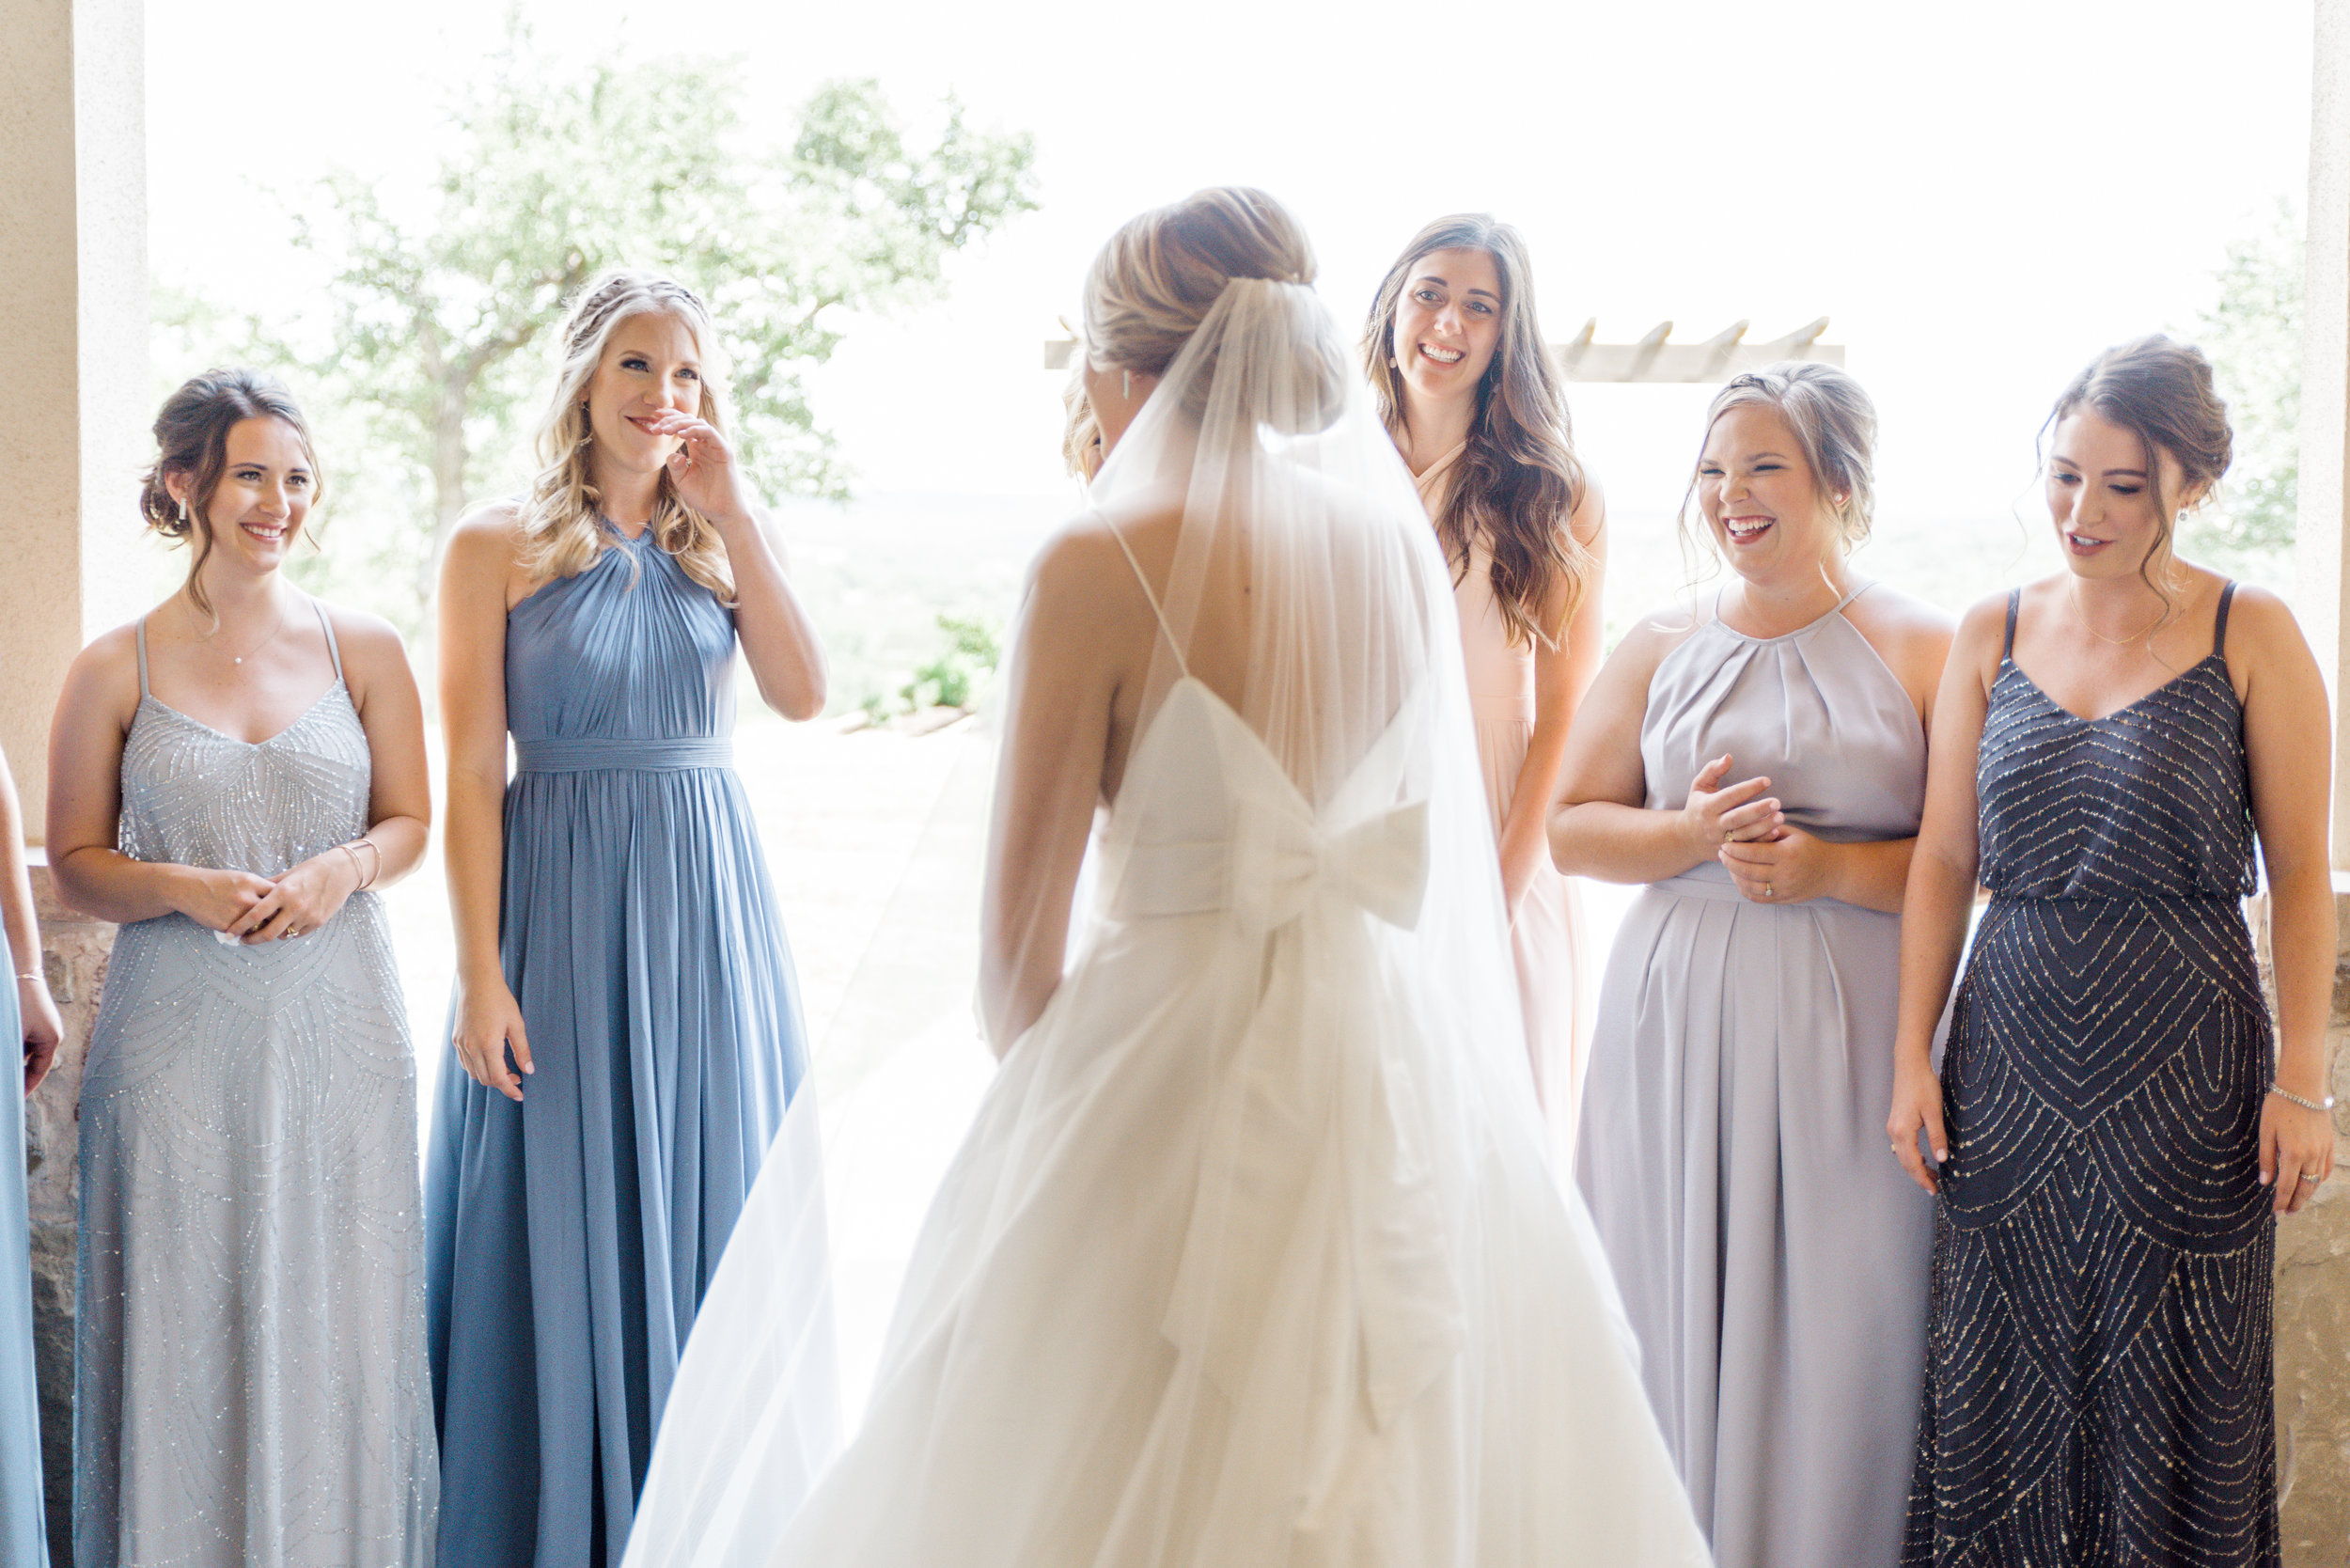 First look with bridesmaids wedding day austin wedding venue canyonwood ridge + destination planner coordinator epoch co + photographer erin elizabeth photo